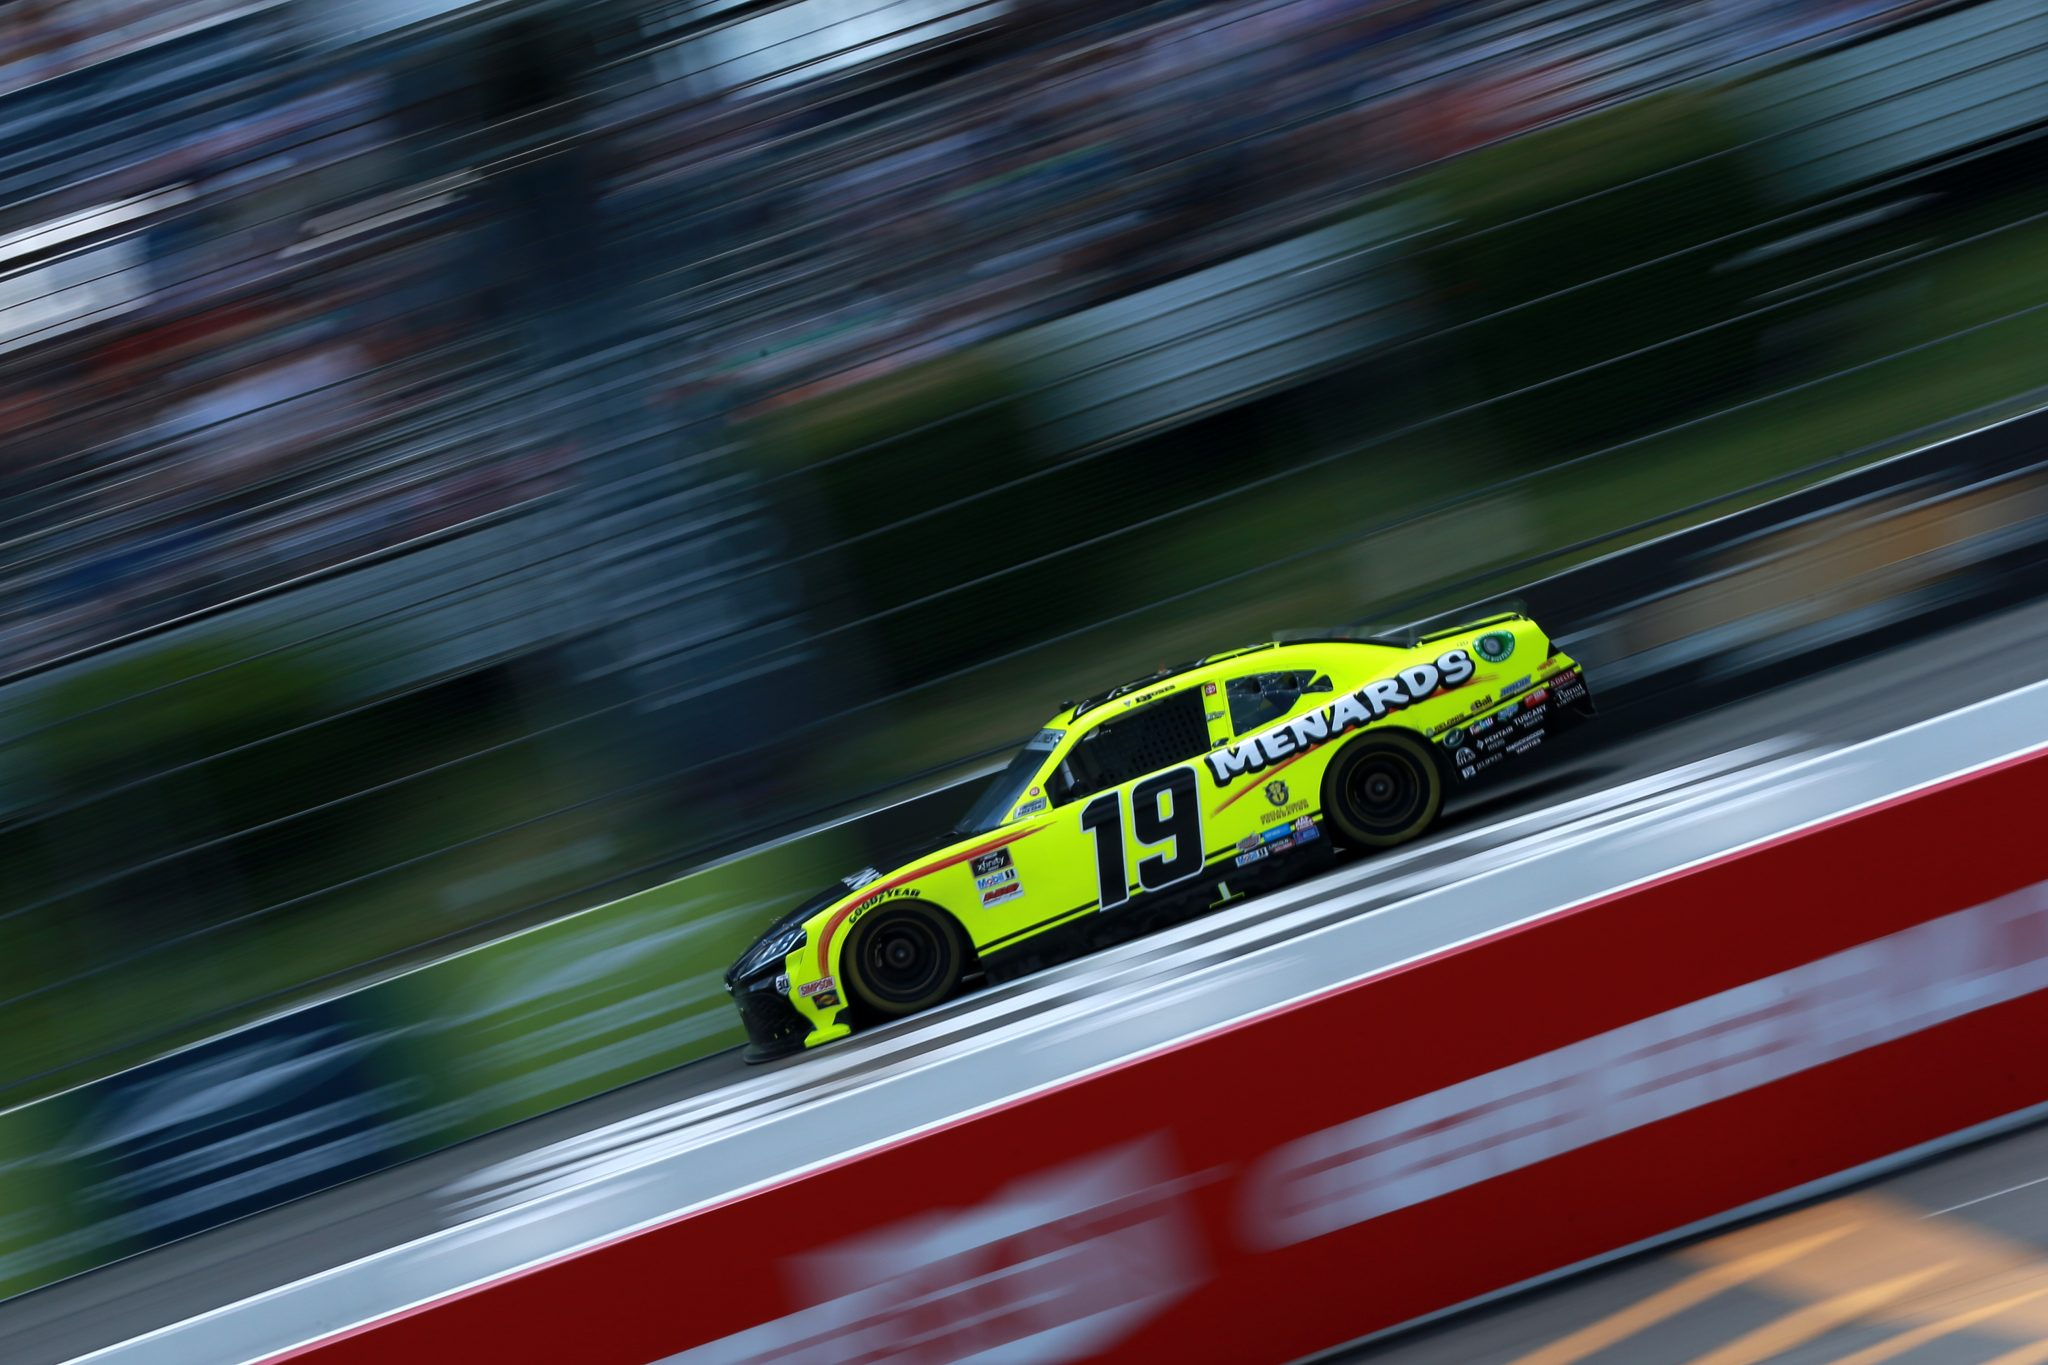 LONG POND, PENNSYLVANIA - JUNE 27: Brandon Jones, driver of the #19 Menards/Pelonis Toyota, drives during the NASCAR Xfinity Series Pocono Green 225 Recycled by J.P. Mascaro & Sons at Pocono Raceway on June 27, 2021 in Long Pond, Pennsylvania. (Photo by Sean Gardner/Getty Images) | Getty Images